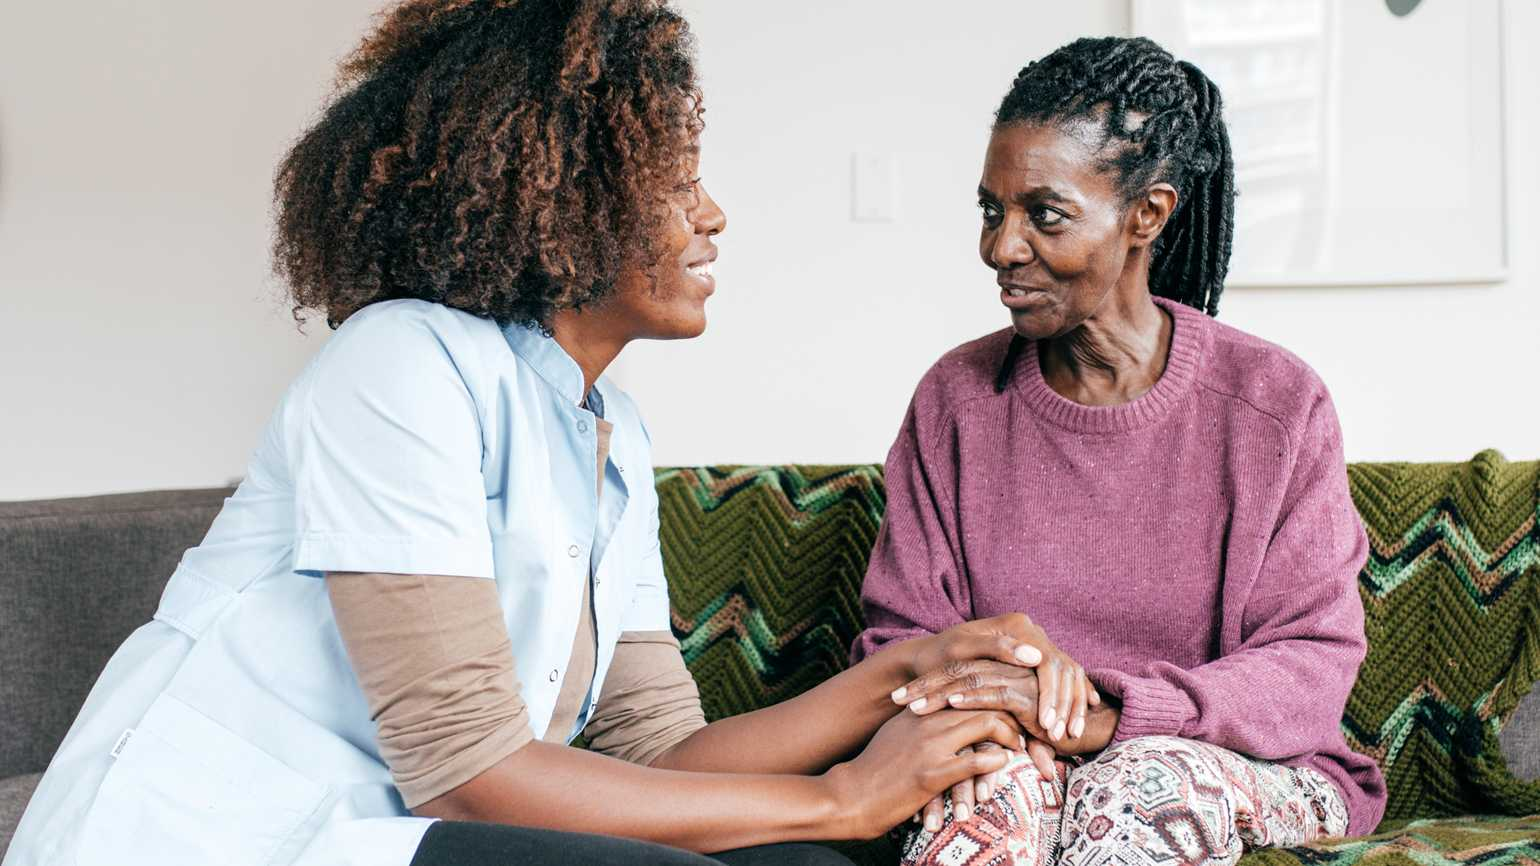 Resources for Finding Home Care for a Loved One